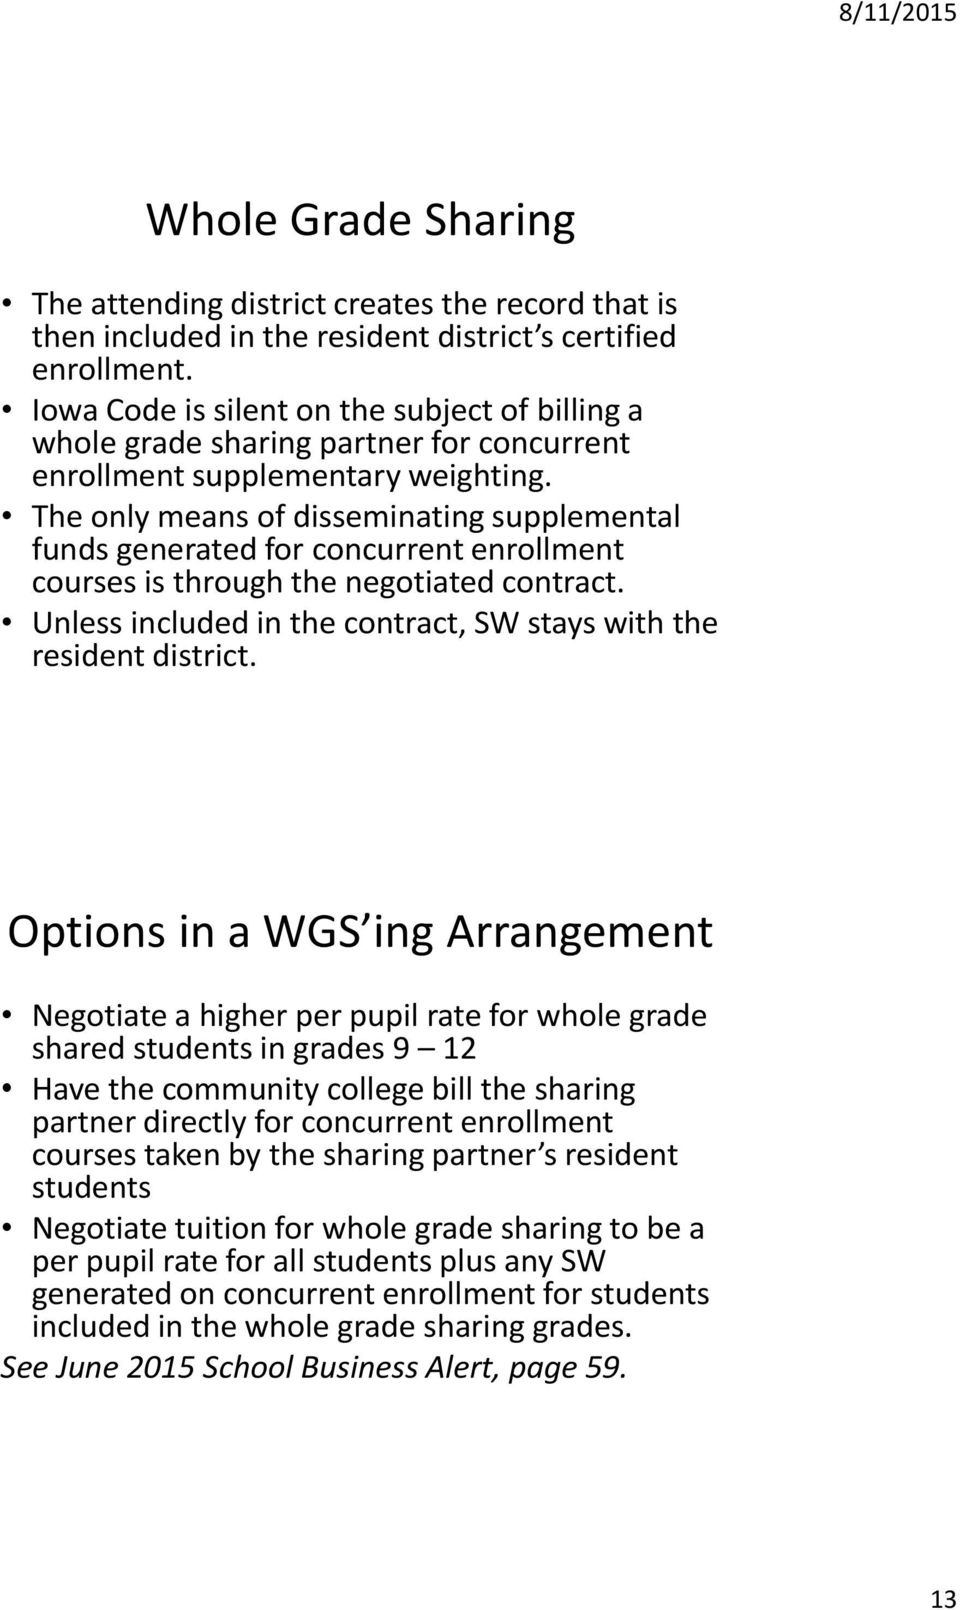 The only means of disseminating supplemental funds generated for concurrent enrollment courses is through the negotiated contract. Unless included in the contract, SW stays with the resident district.